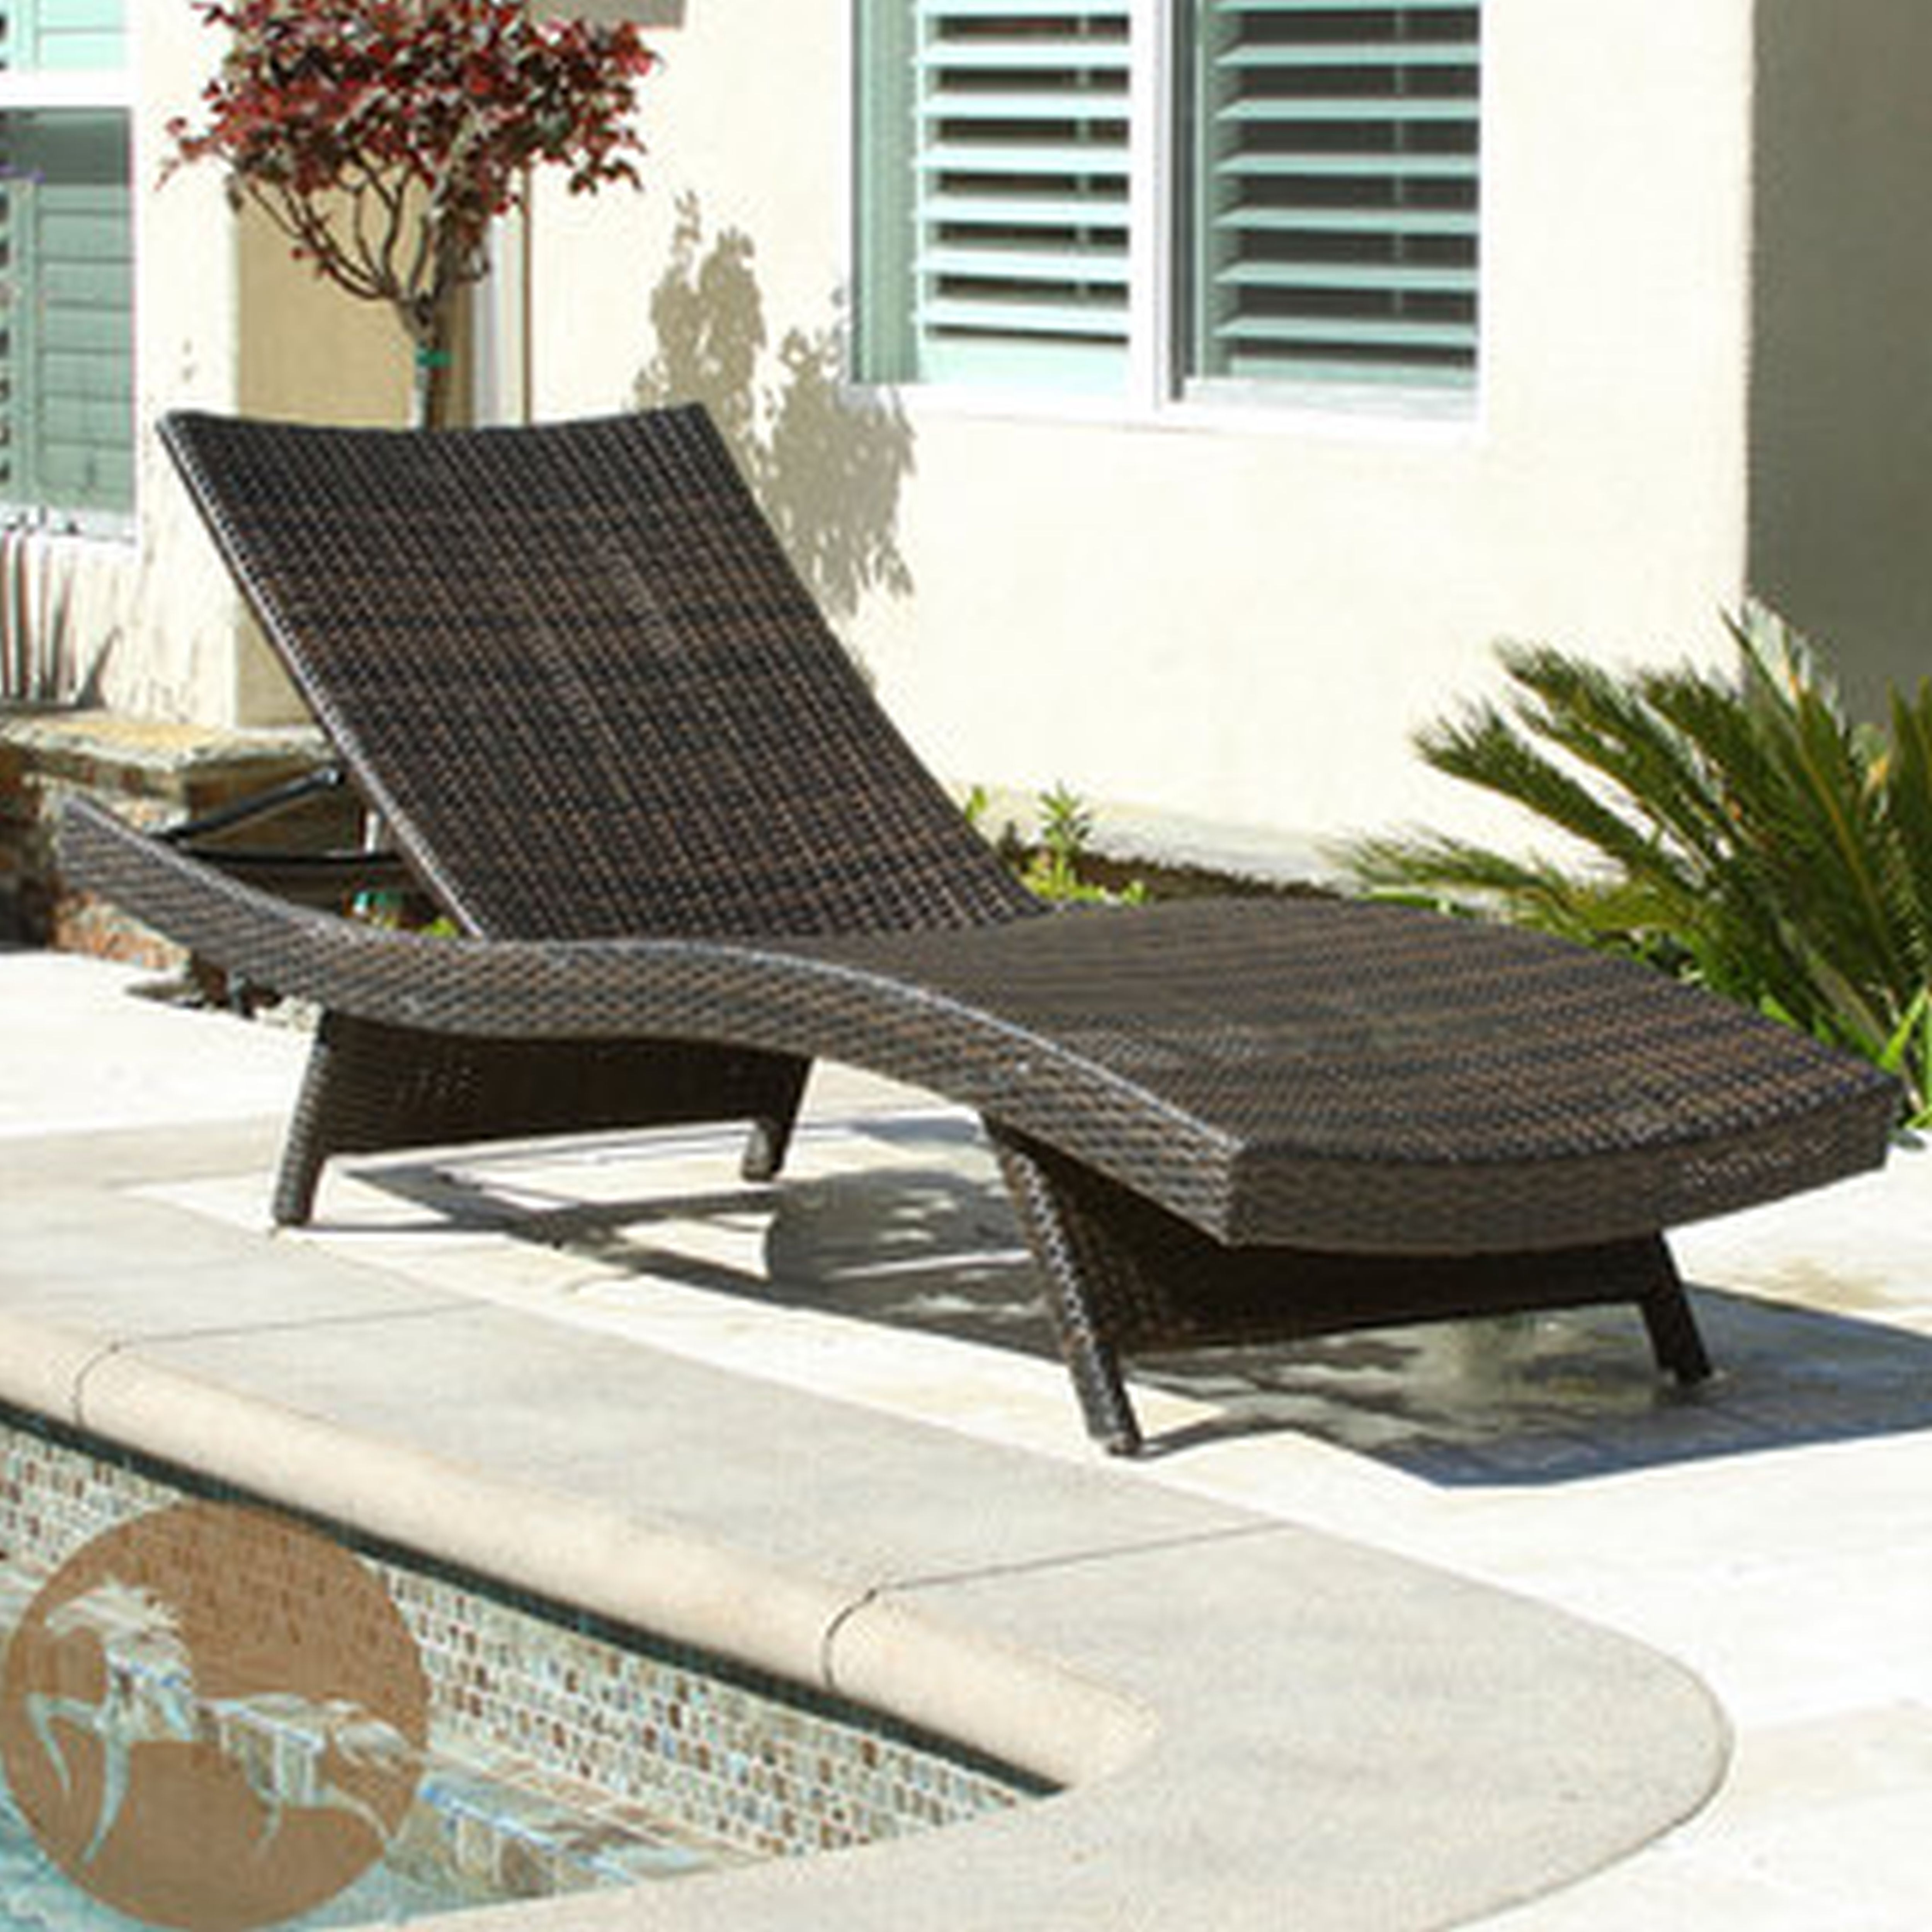 Famous Lounge Chair : Oversized Outdoor Lounge Chair White Wicker Chaise Throughout White Wicker Chaise Lounges (View 3 of 15)